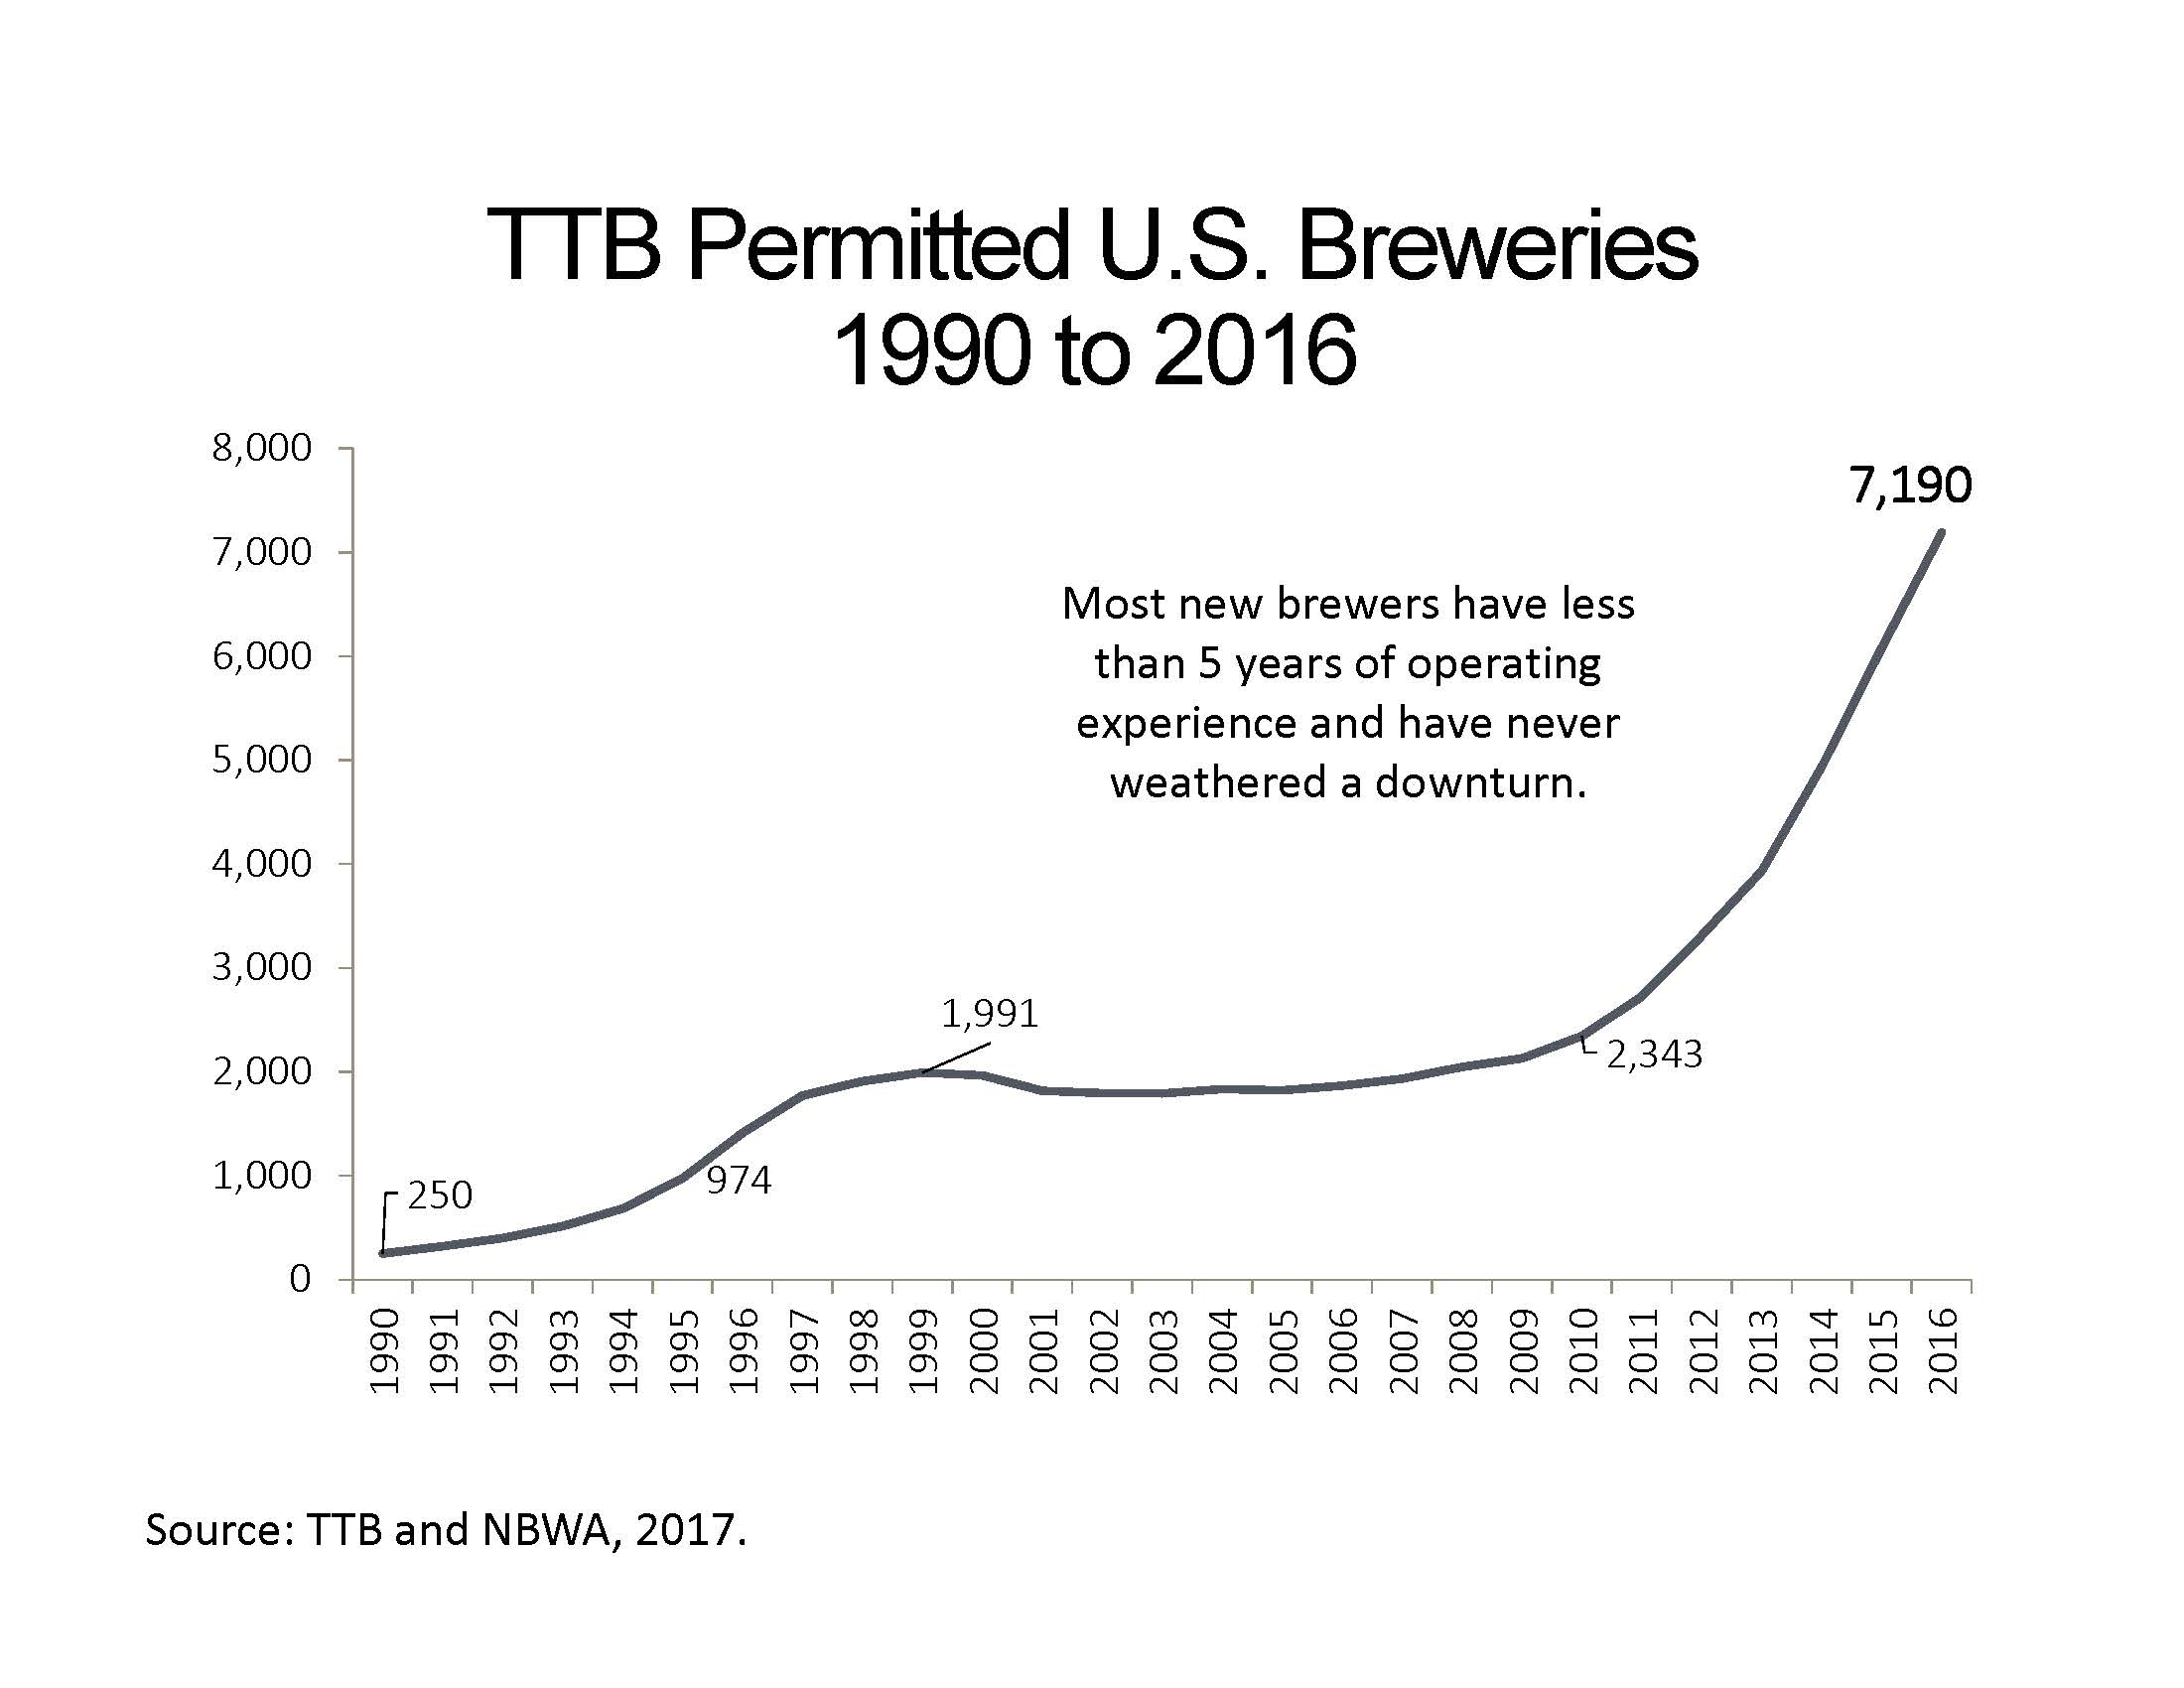 TTB Permitted U.S. Breweries 1990 to 2016